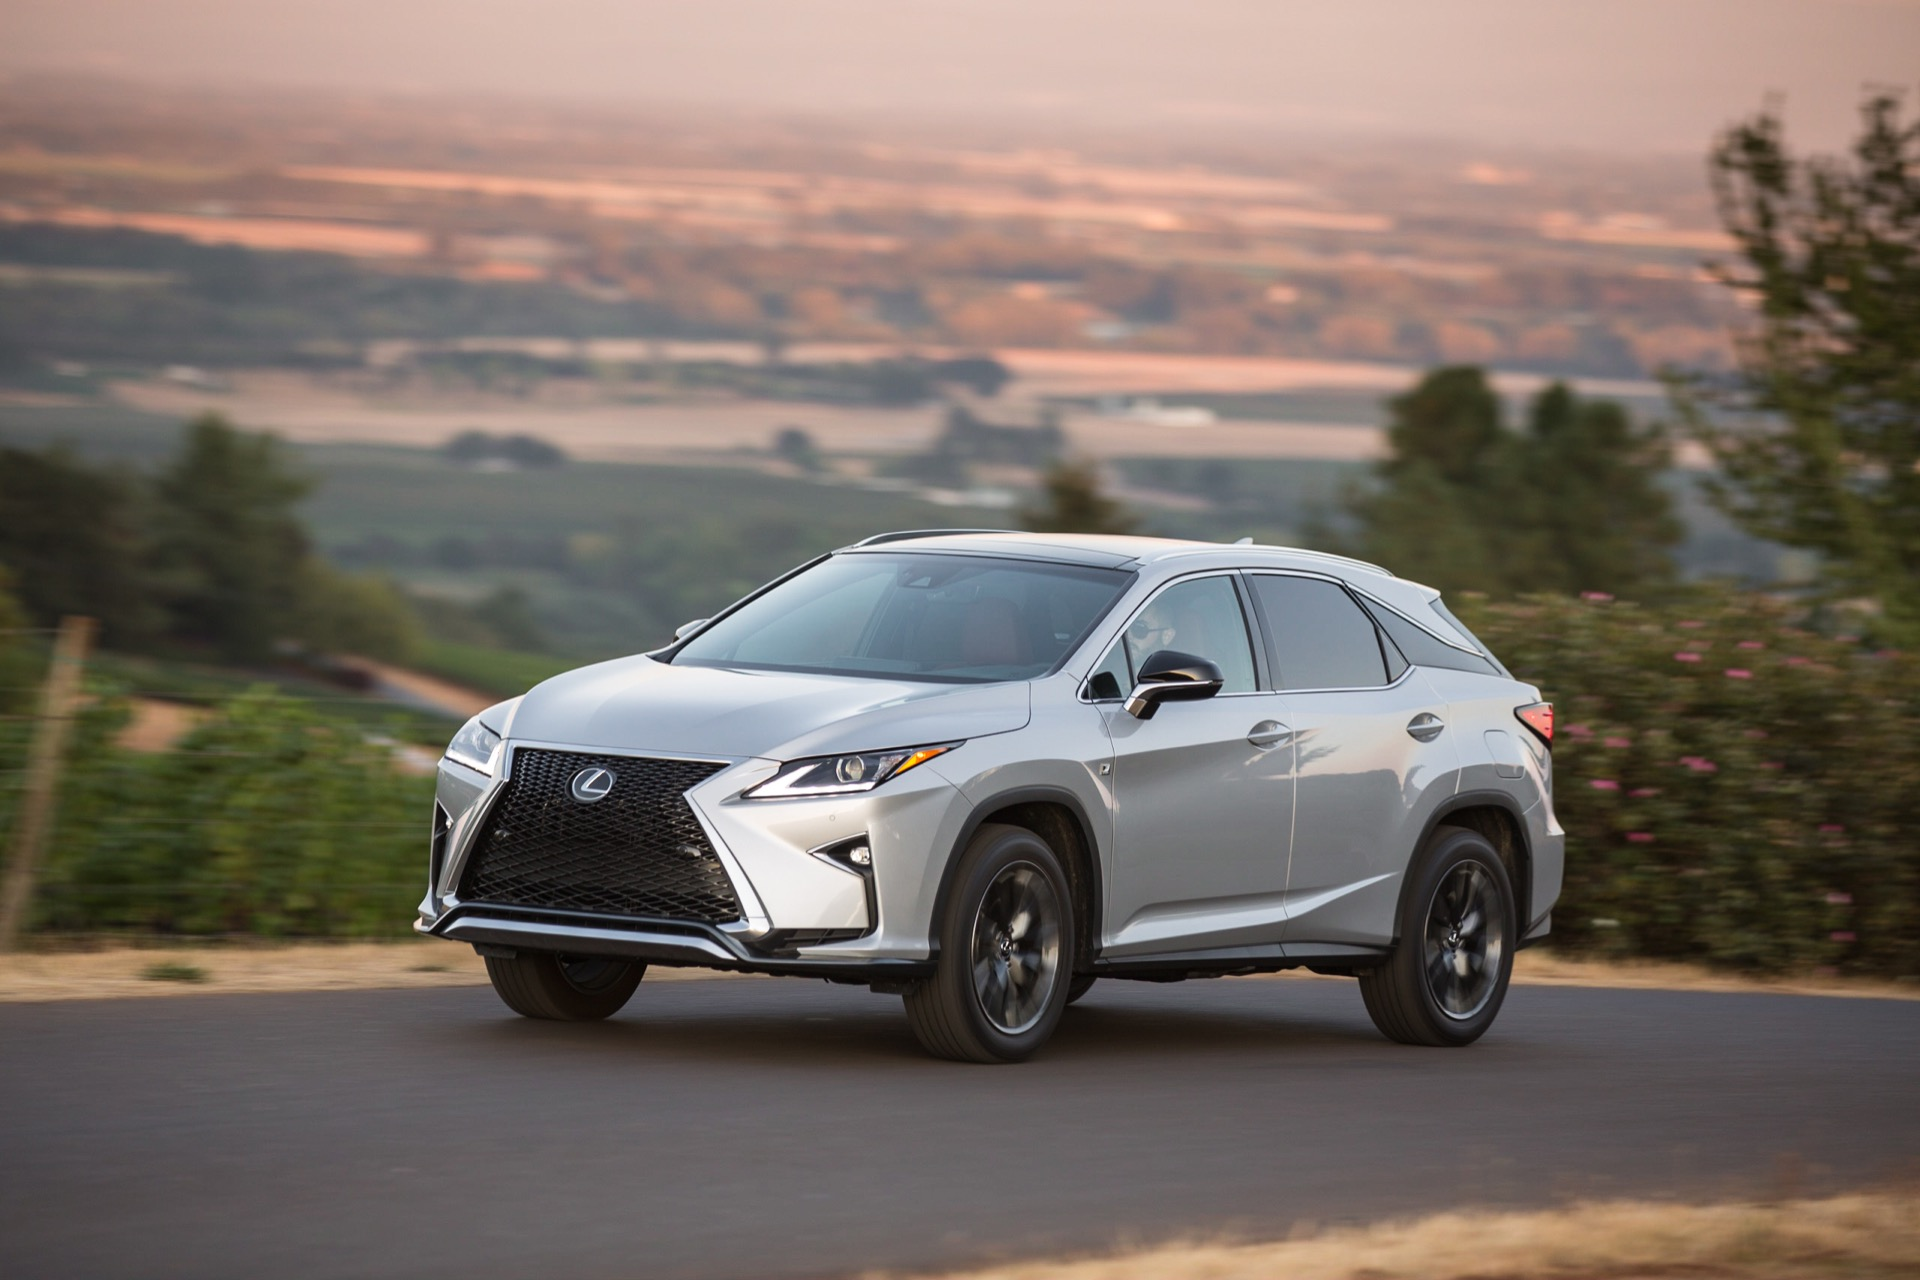 2016 Lexus RX 350 Performance Review  The Car Connection